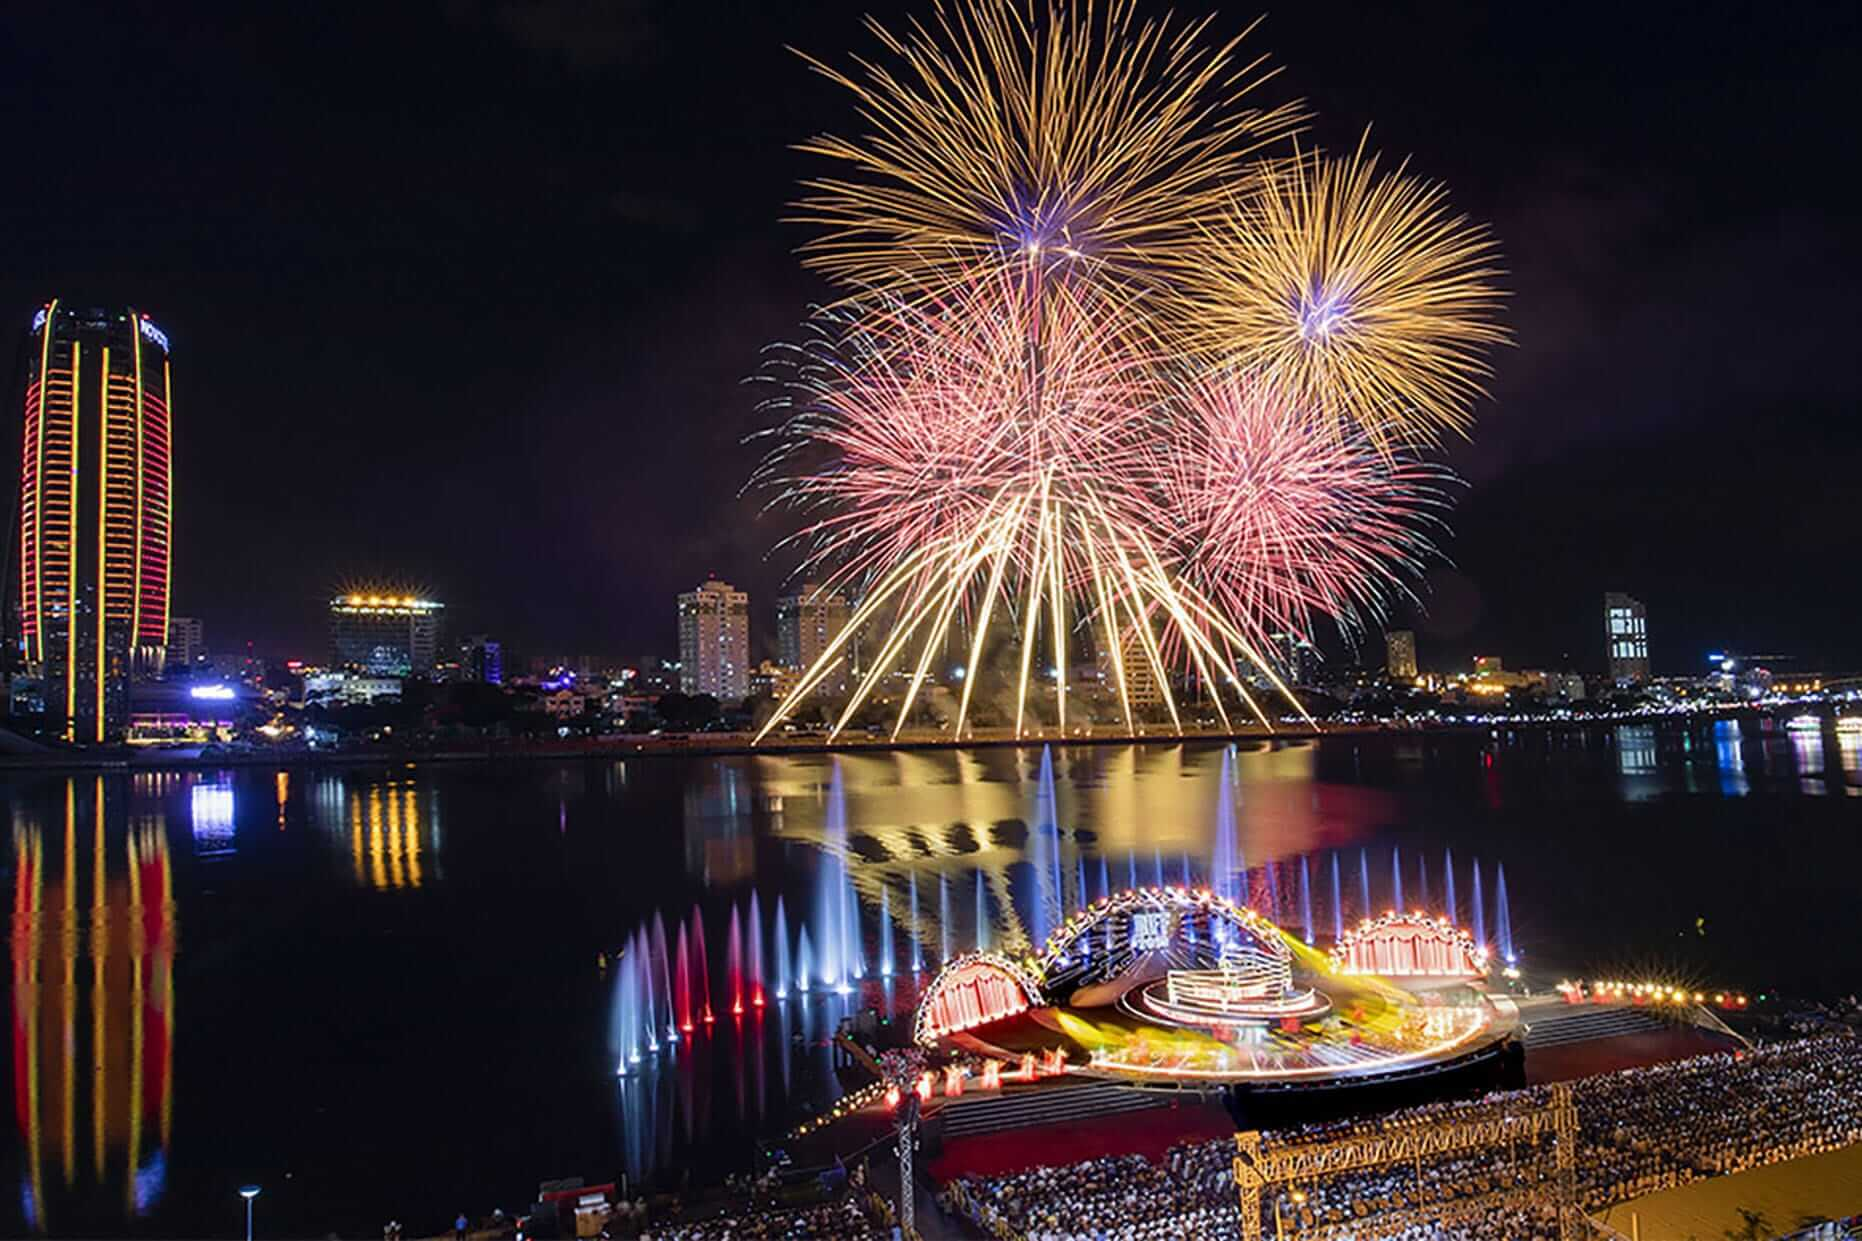 beautiful fireworks during the Da Nang International Fireworks festival